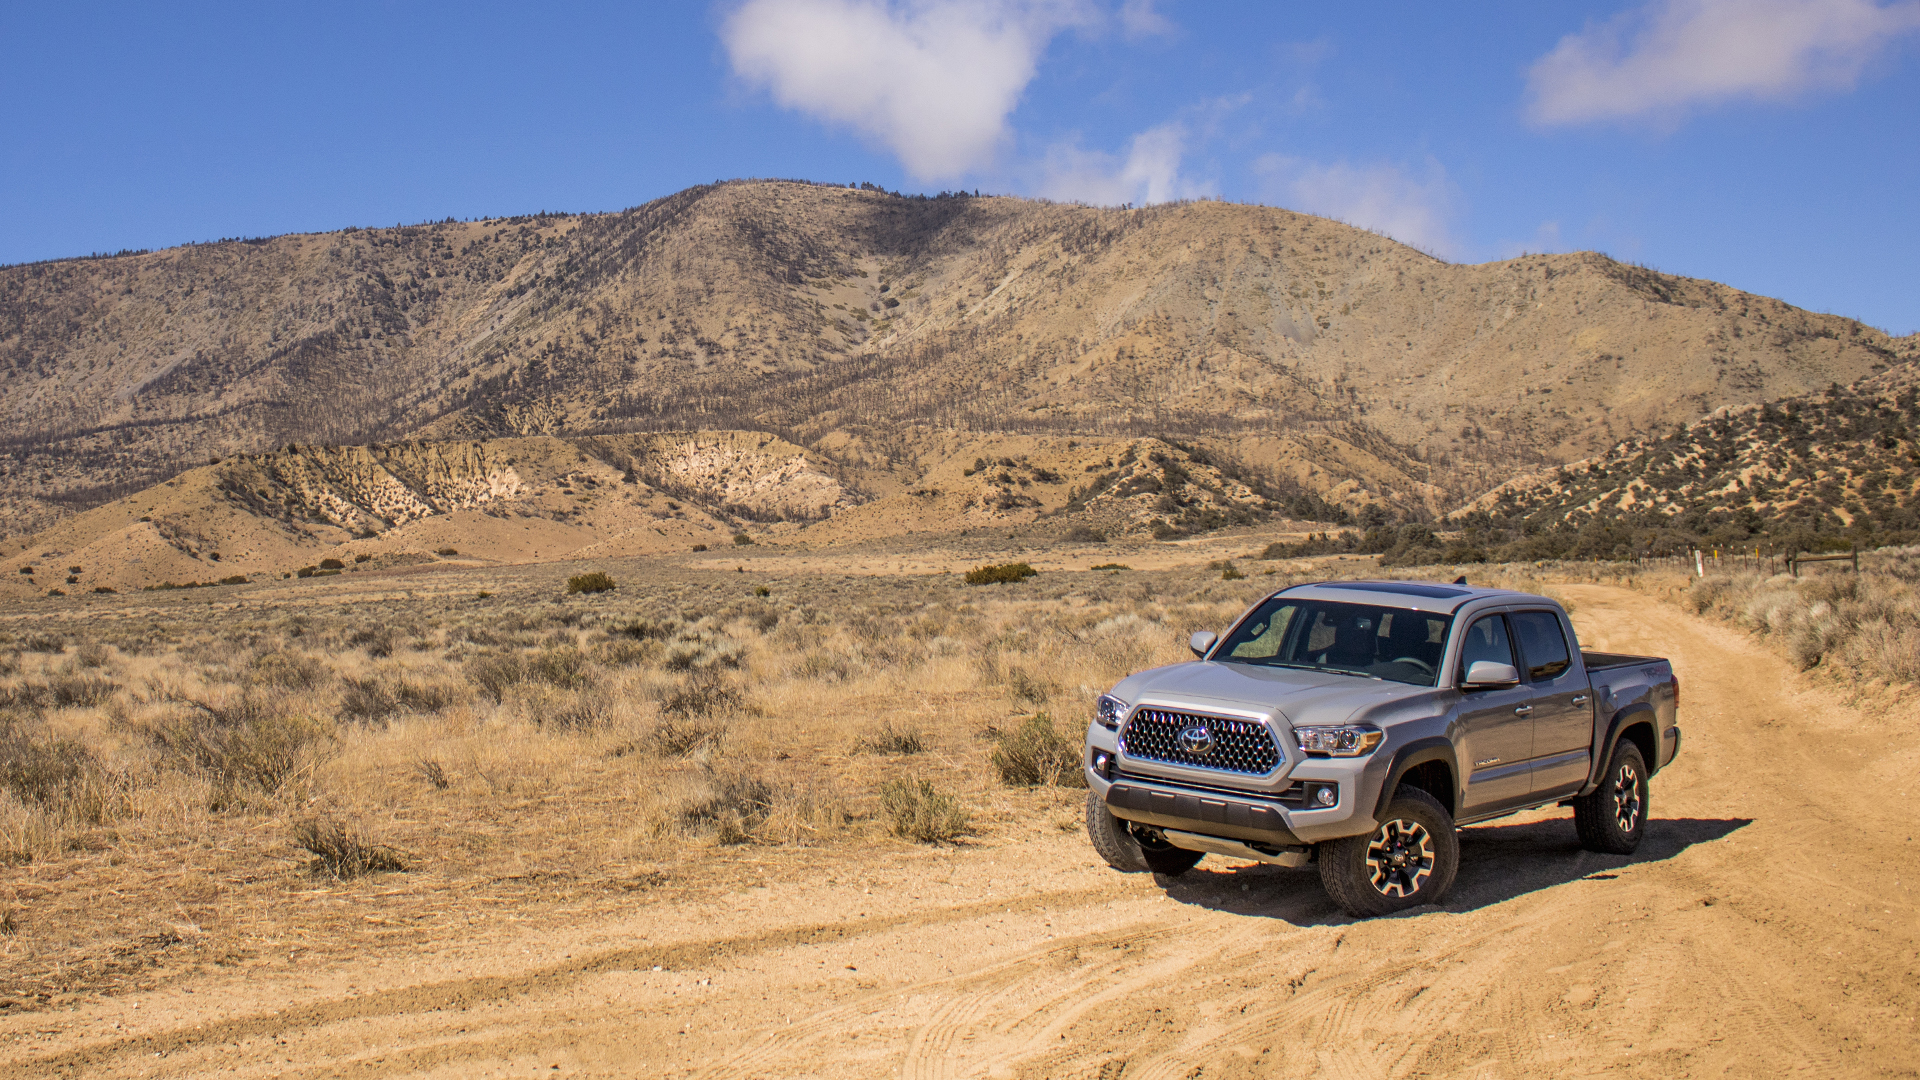 Toyota Tacoma Double Cab >> 2018 Toyota Tacoma TRD Off-Road Review: An Apocalypse-Proof Pickup Truck - The Drive